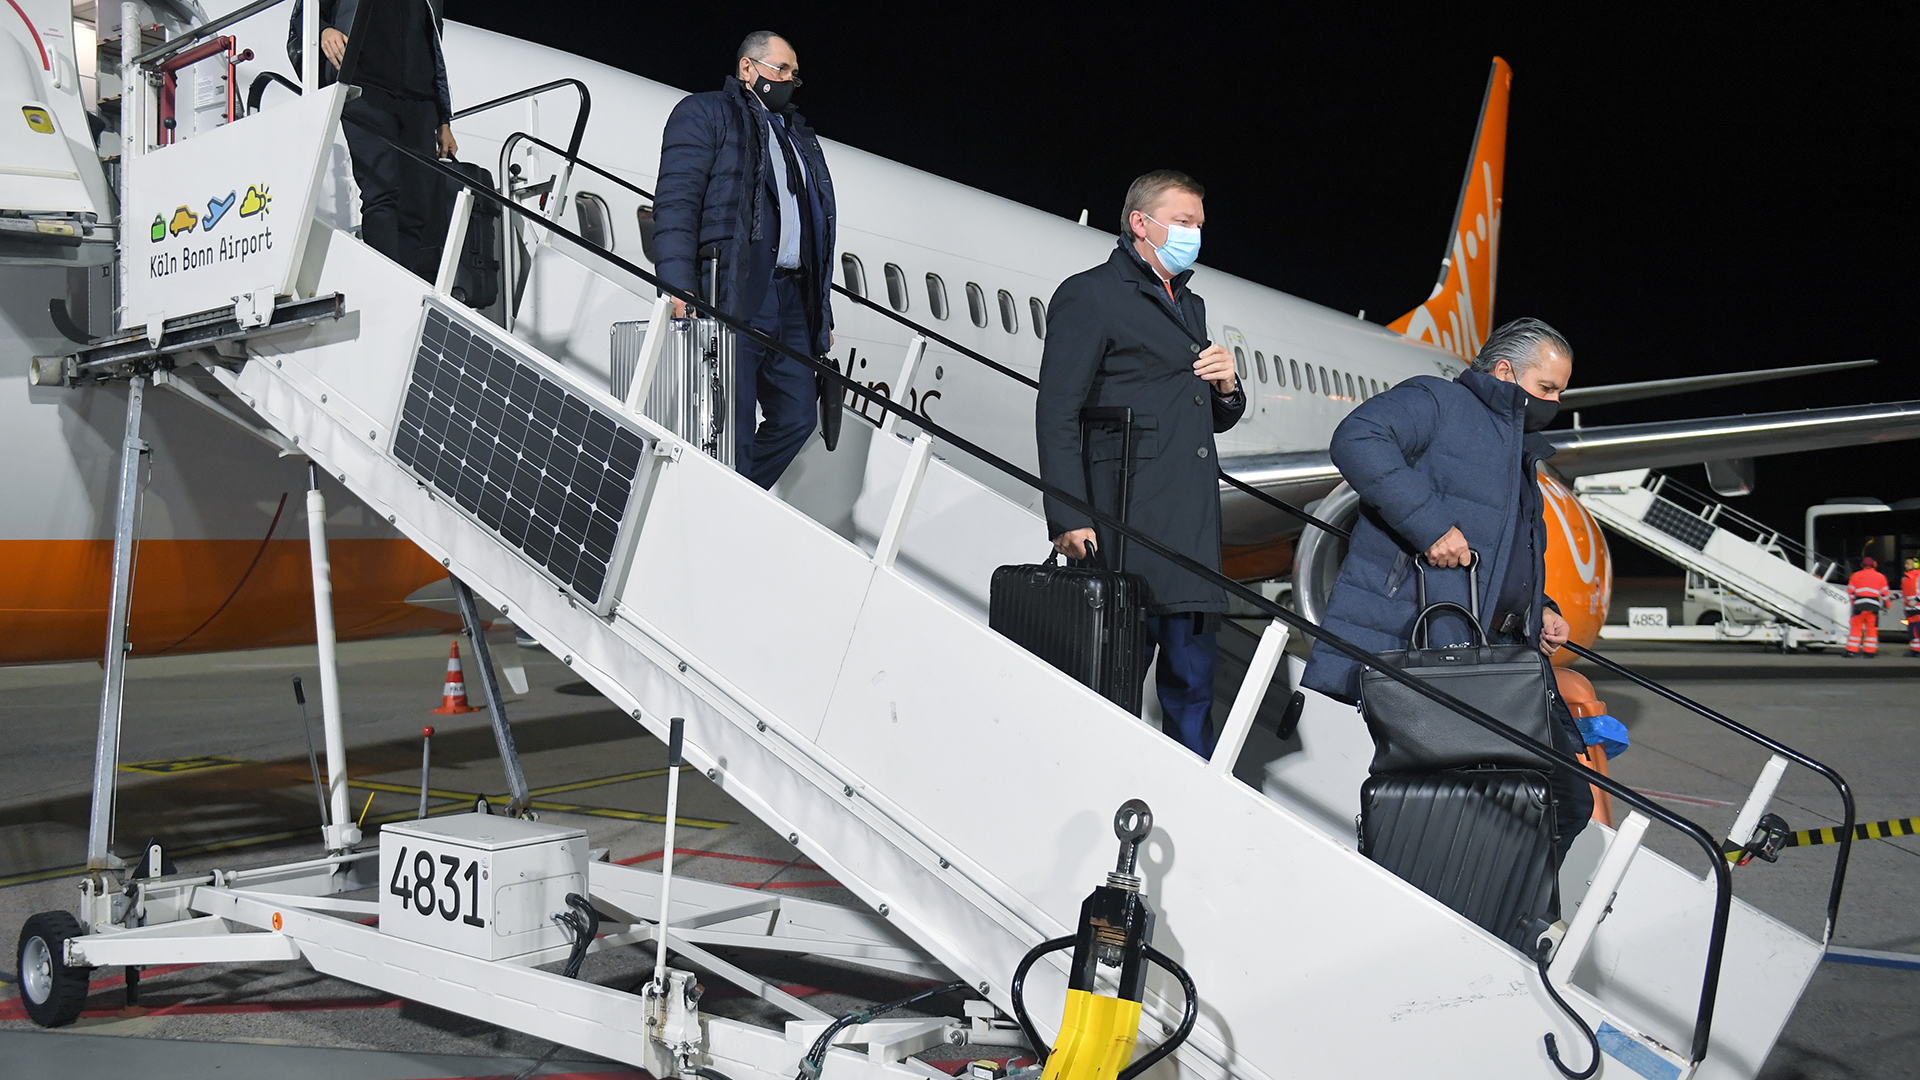 https://shakhtar.com/-/media/fcsd/news/2020/november/24_news/24_flight/gal/dsc_5820.jpg?1606253876382